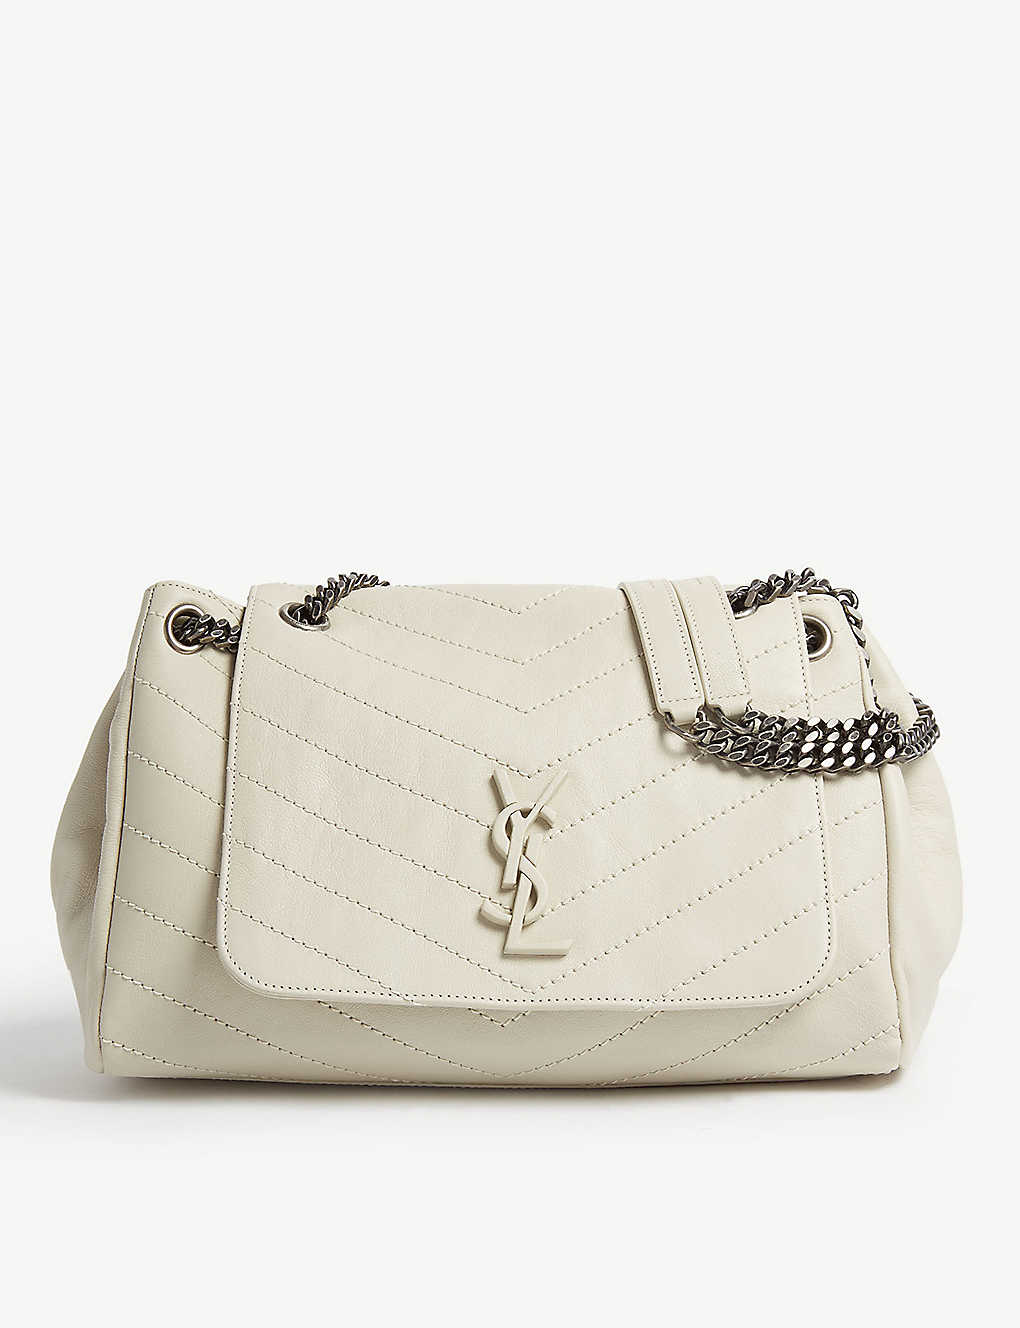 4947f7951fa2fa SAINT LAURENT - Nolita monogram medium leather shoulder bag ...